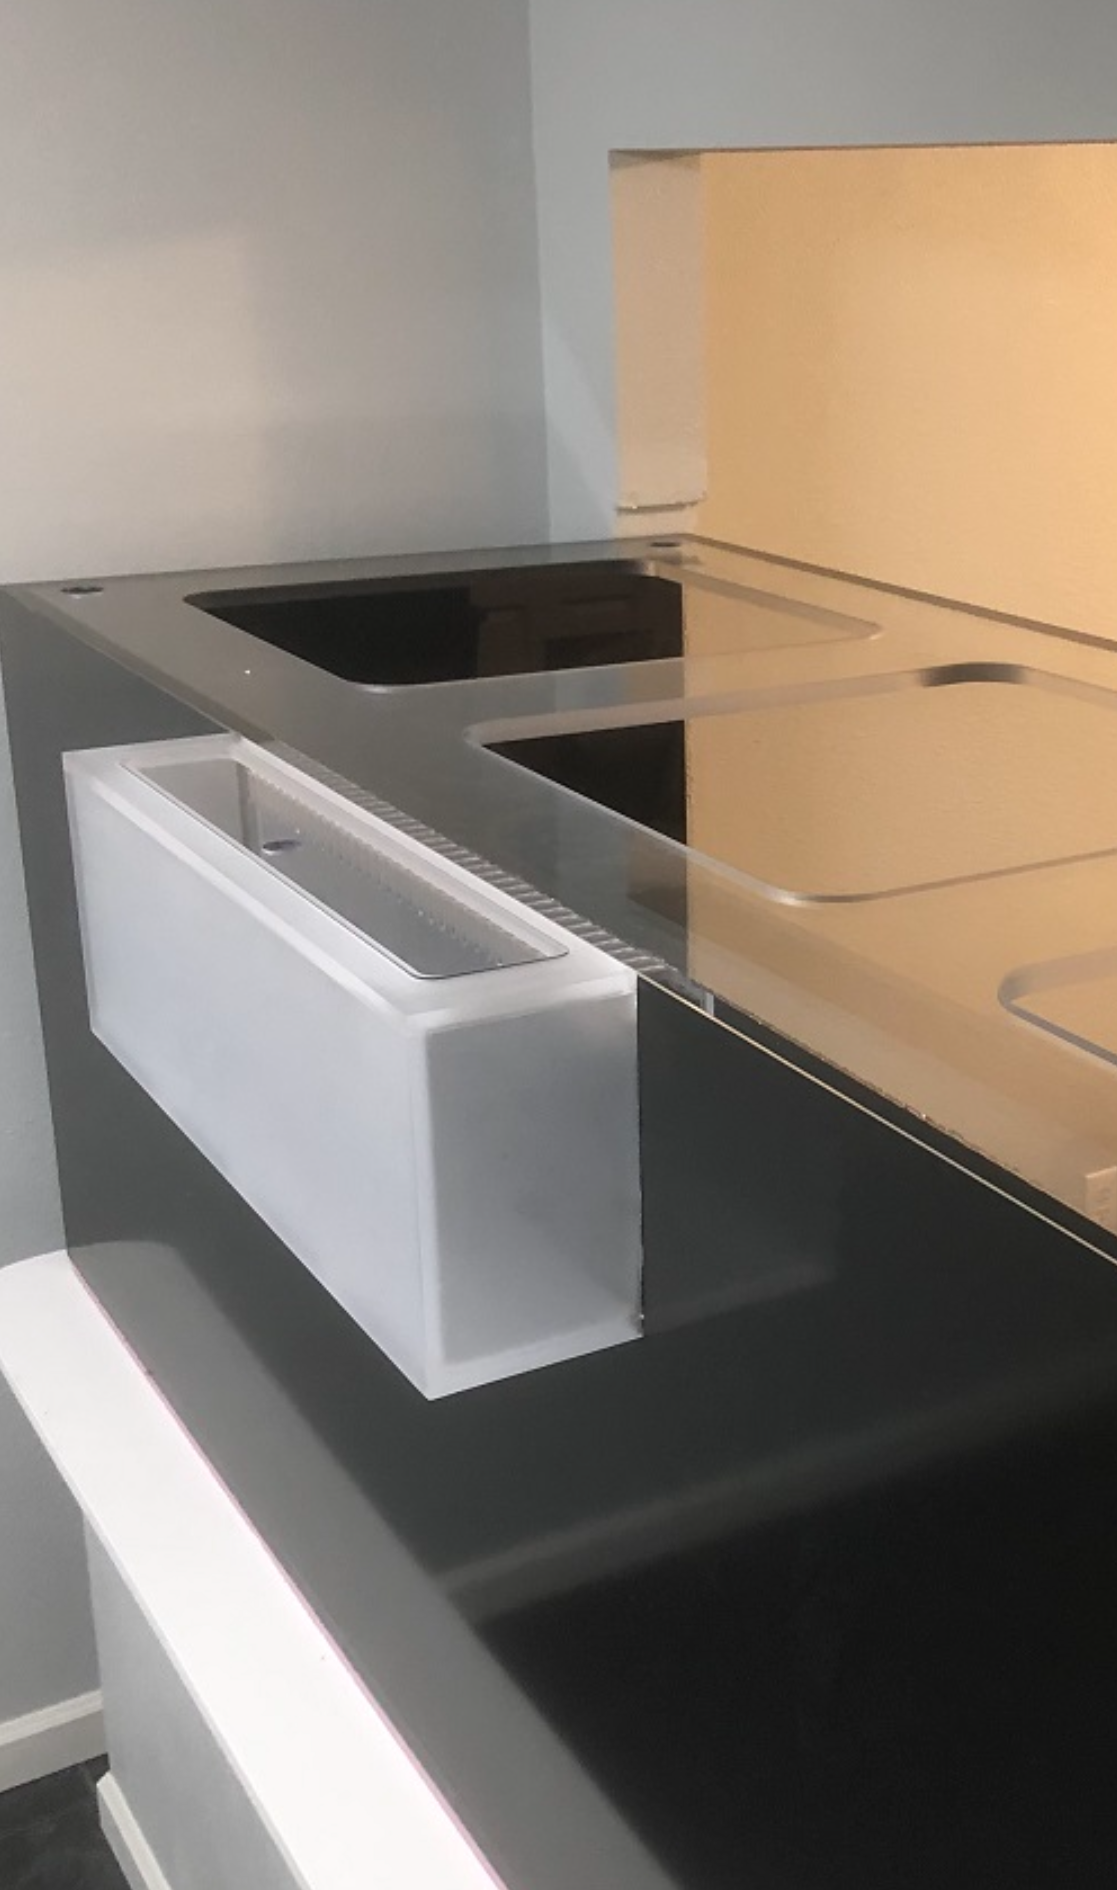 External overflow Box - External overflow boxes are ideal when you need a reef ready aquarium but don't want to take up room inside the aquarium with a bulky overflow box. An extremely clean looking alternative.